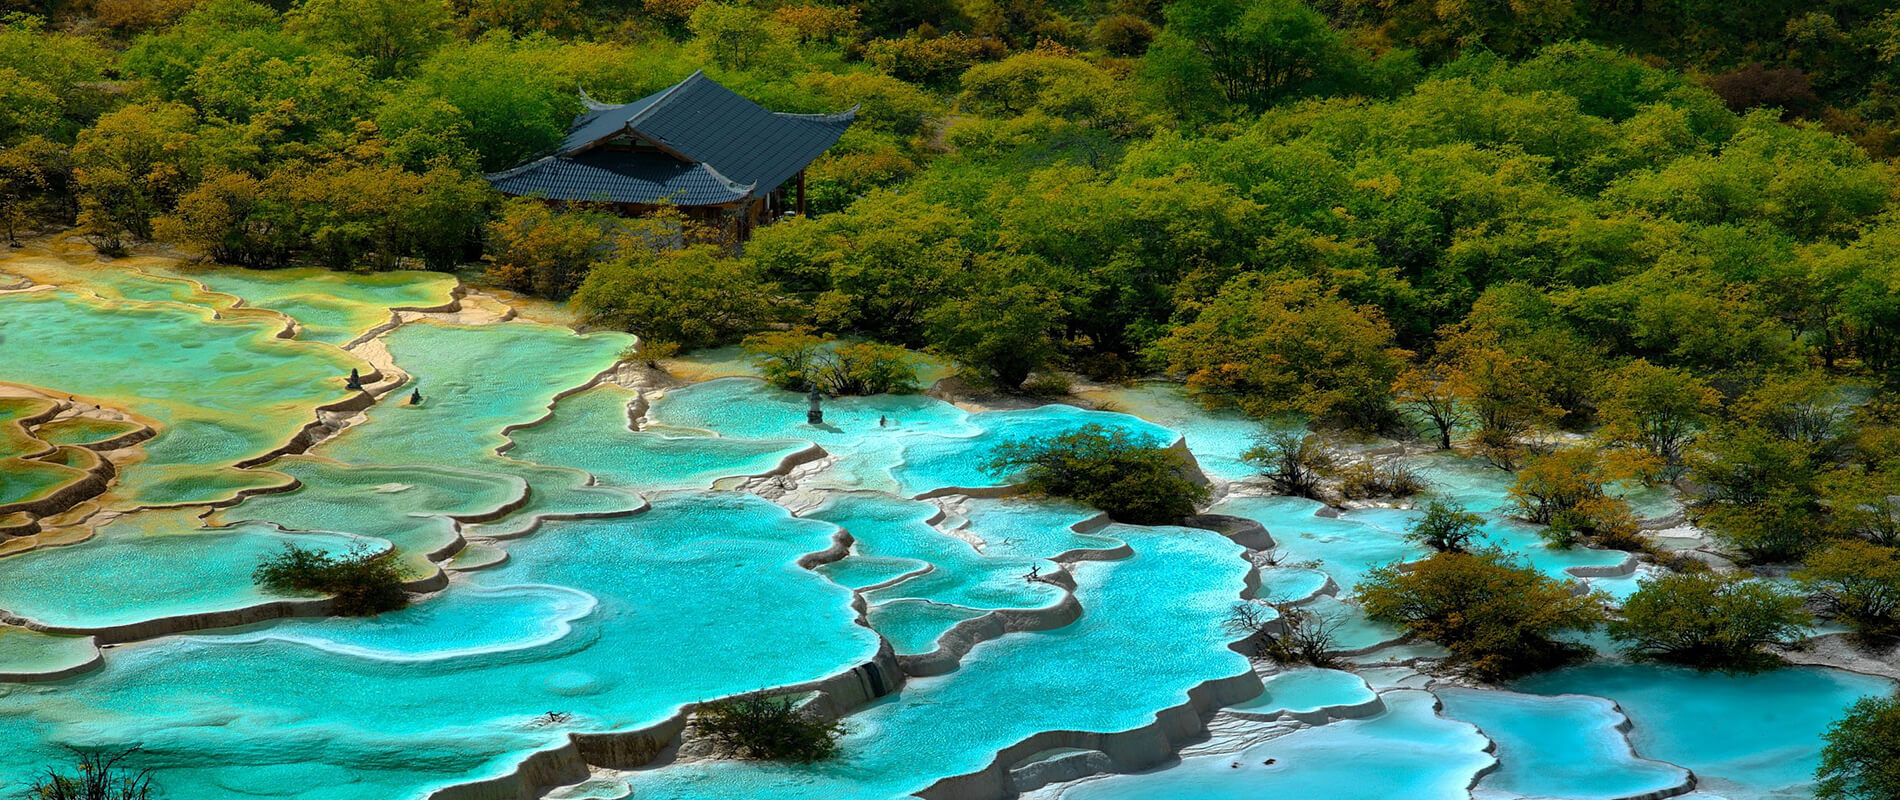 Huanglong, Thermal Pools Hidden Among the Chinese Mountains